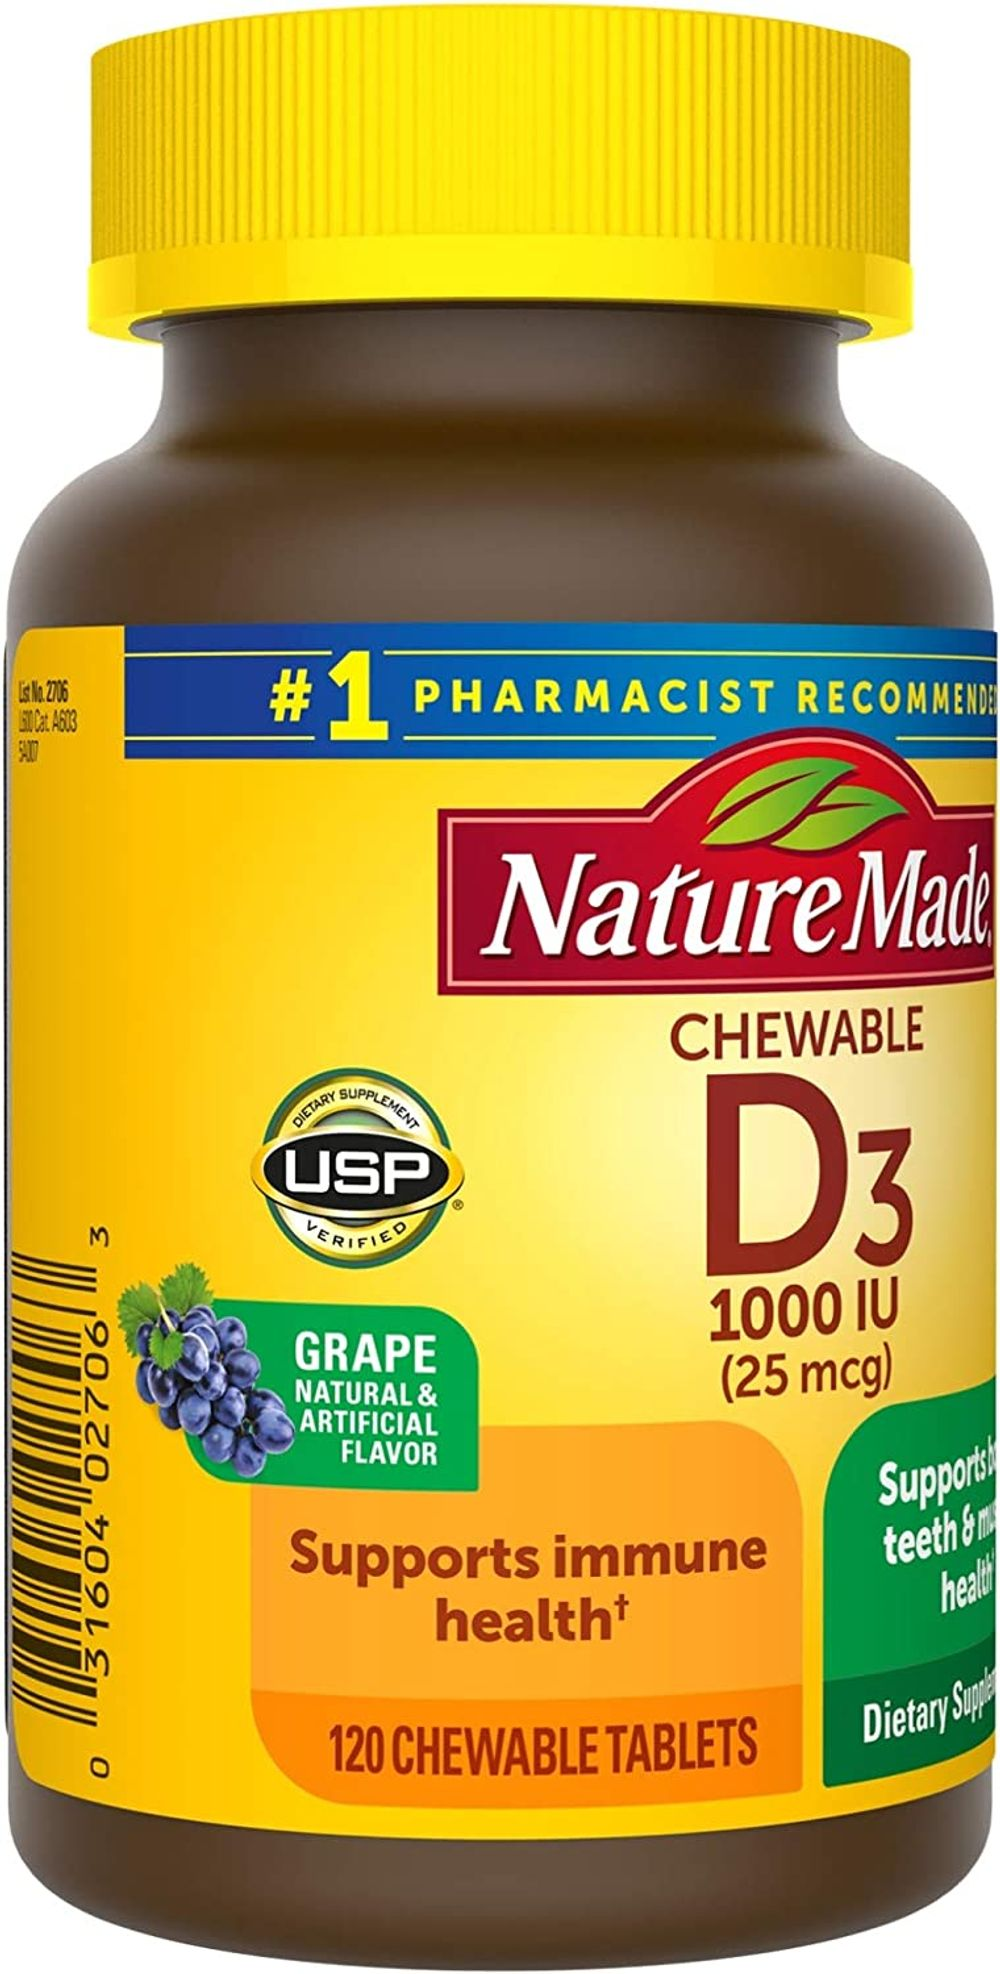 Nature Made Vitamin D3 1000 IU (25mcg) Chewable Tablets, 120 Count for Bone Health† (Packaging May Vary)